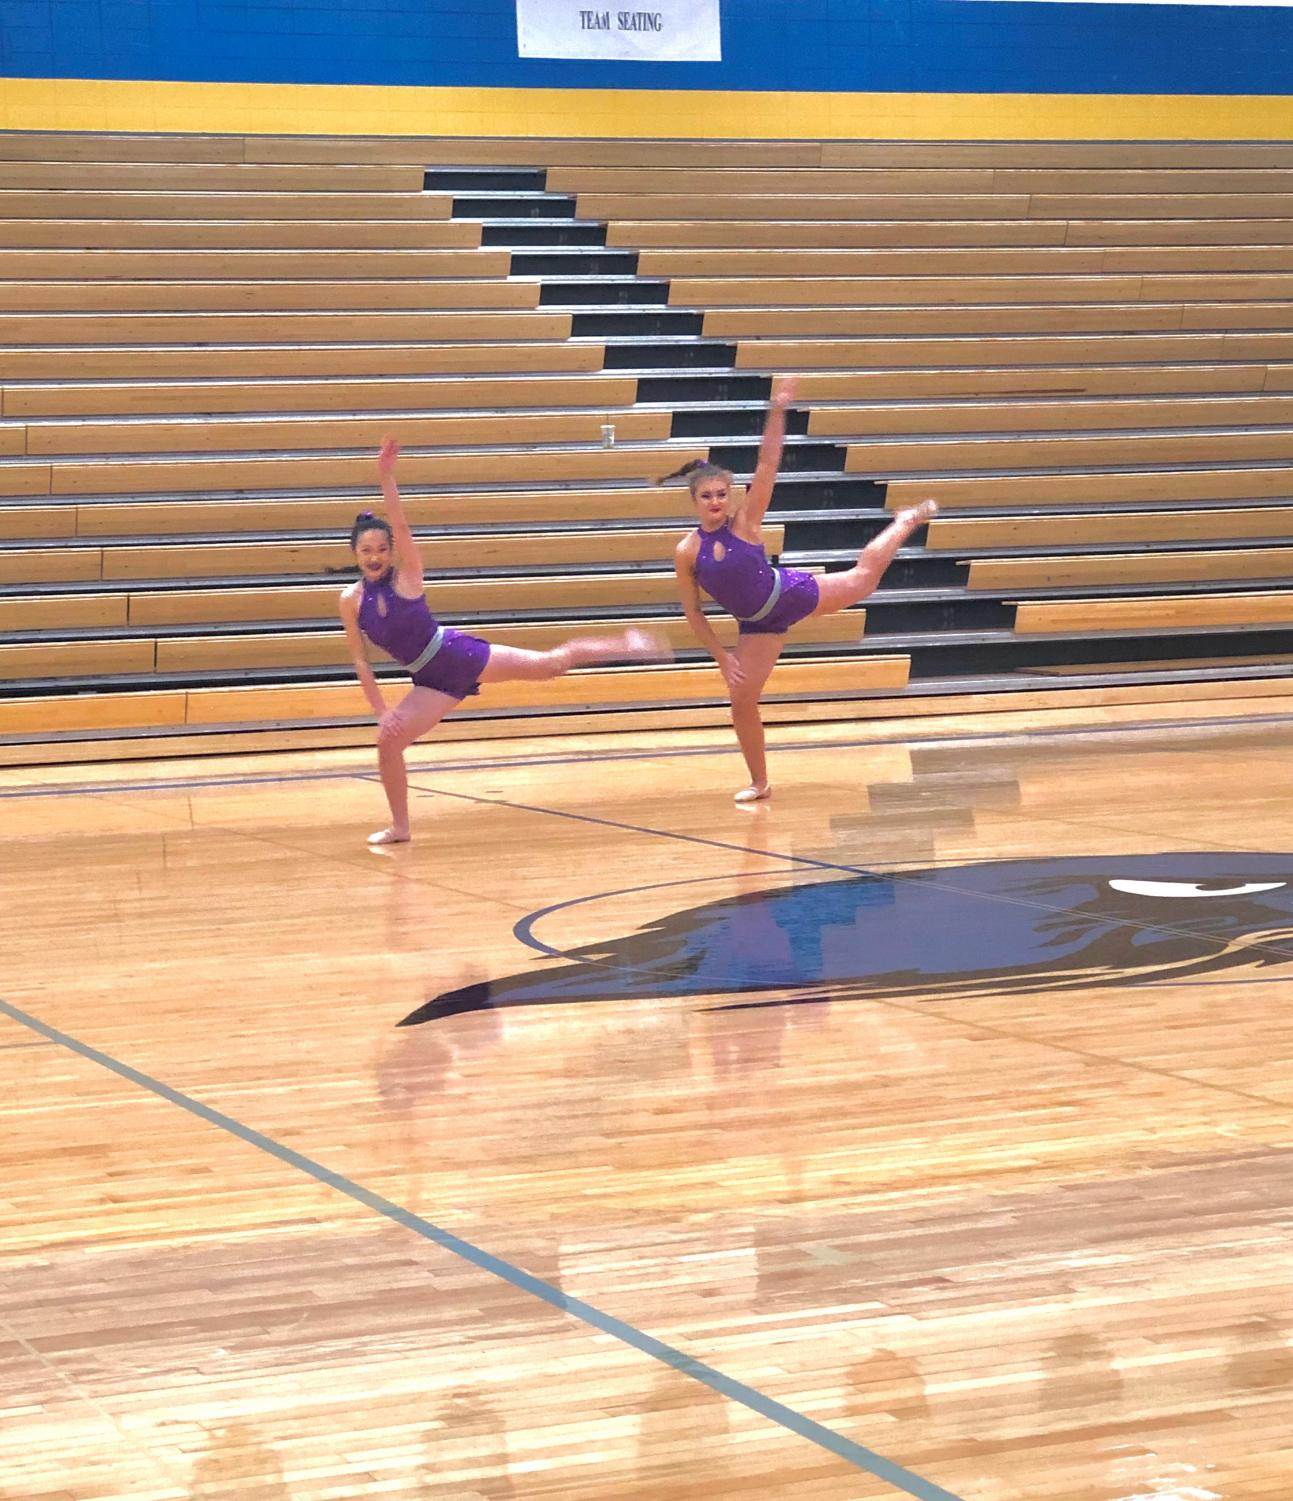 Kenzie Childers (11) and Maddie Ray (11) perform a duet at the State Dance Competition. The competition was pushed back two days due to inclement weather in the Kansas City area.